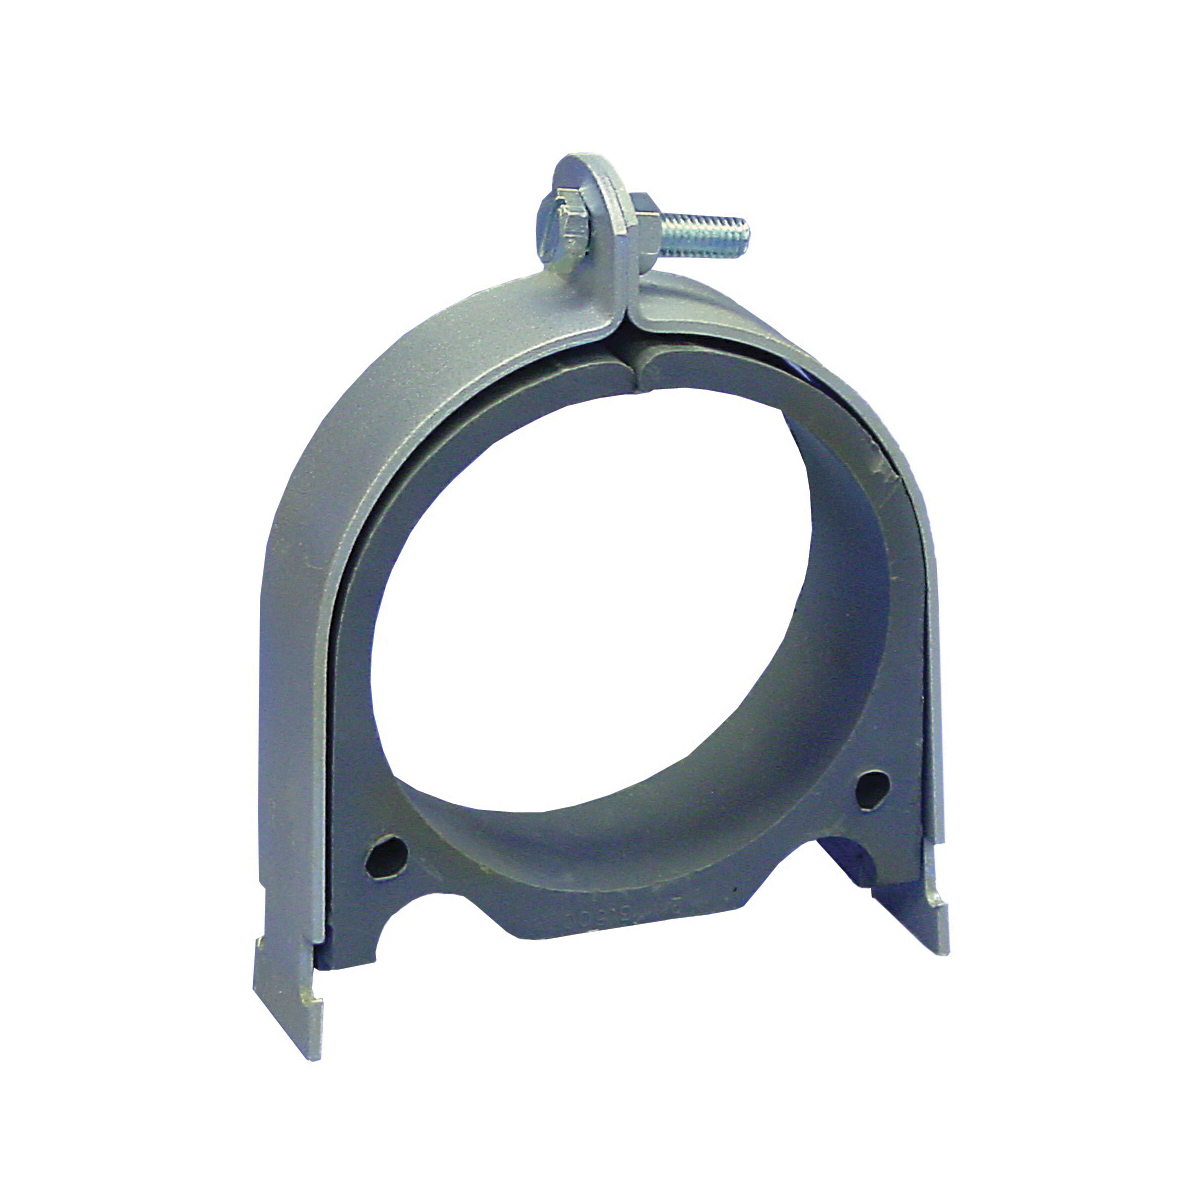 Anvil-Strut™ 2400223612 FIG AS 032OD Cushion Clamp Assembly, 2 in Pipe, 800 lb Pullout/125 lb Transverse/125 lb Longitudinal, Carbon Steel, Electro-Galvanized, Domestic